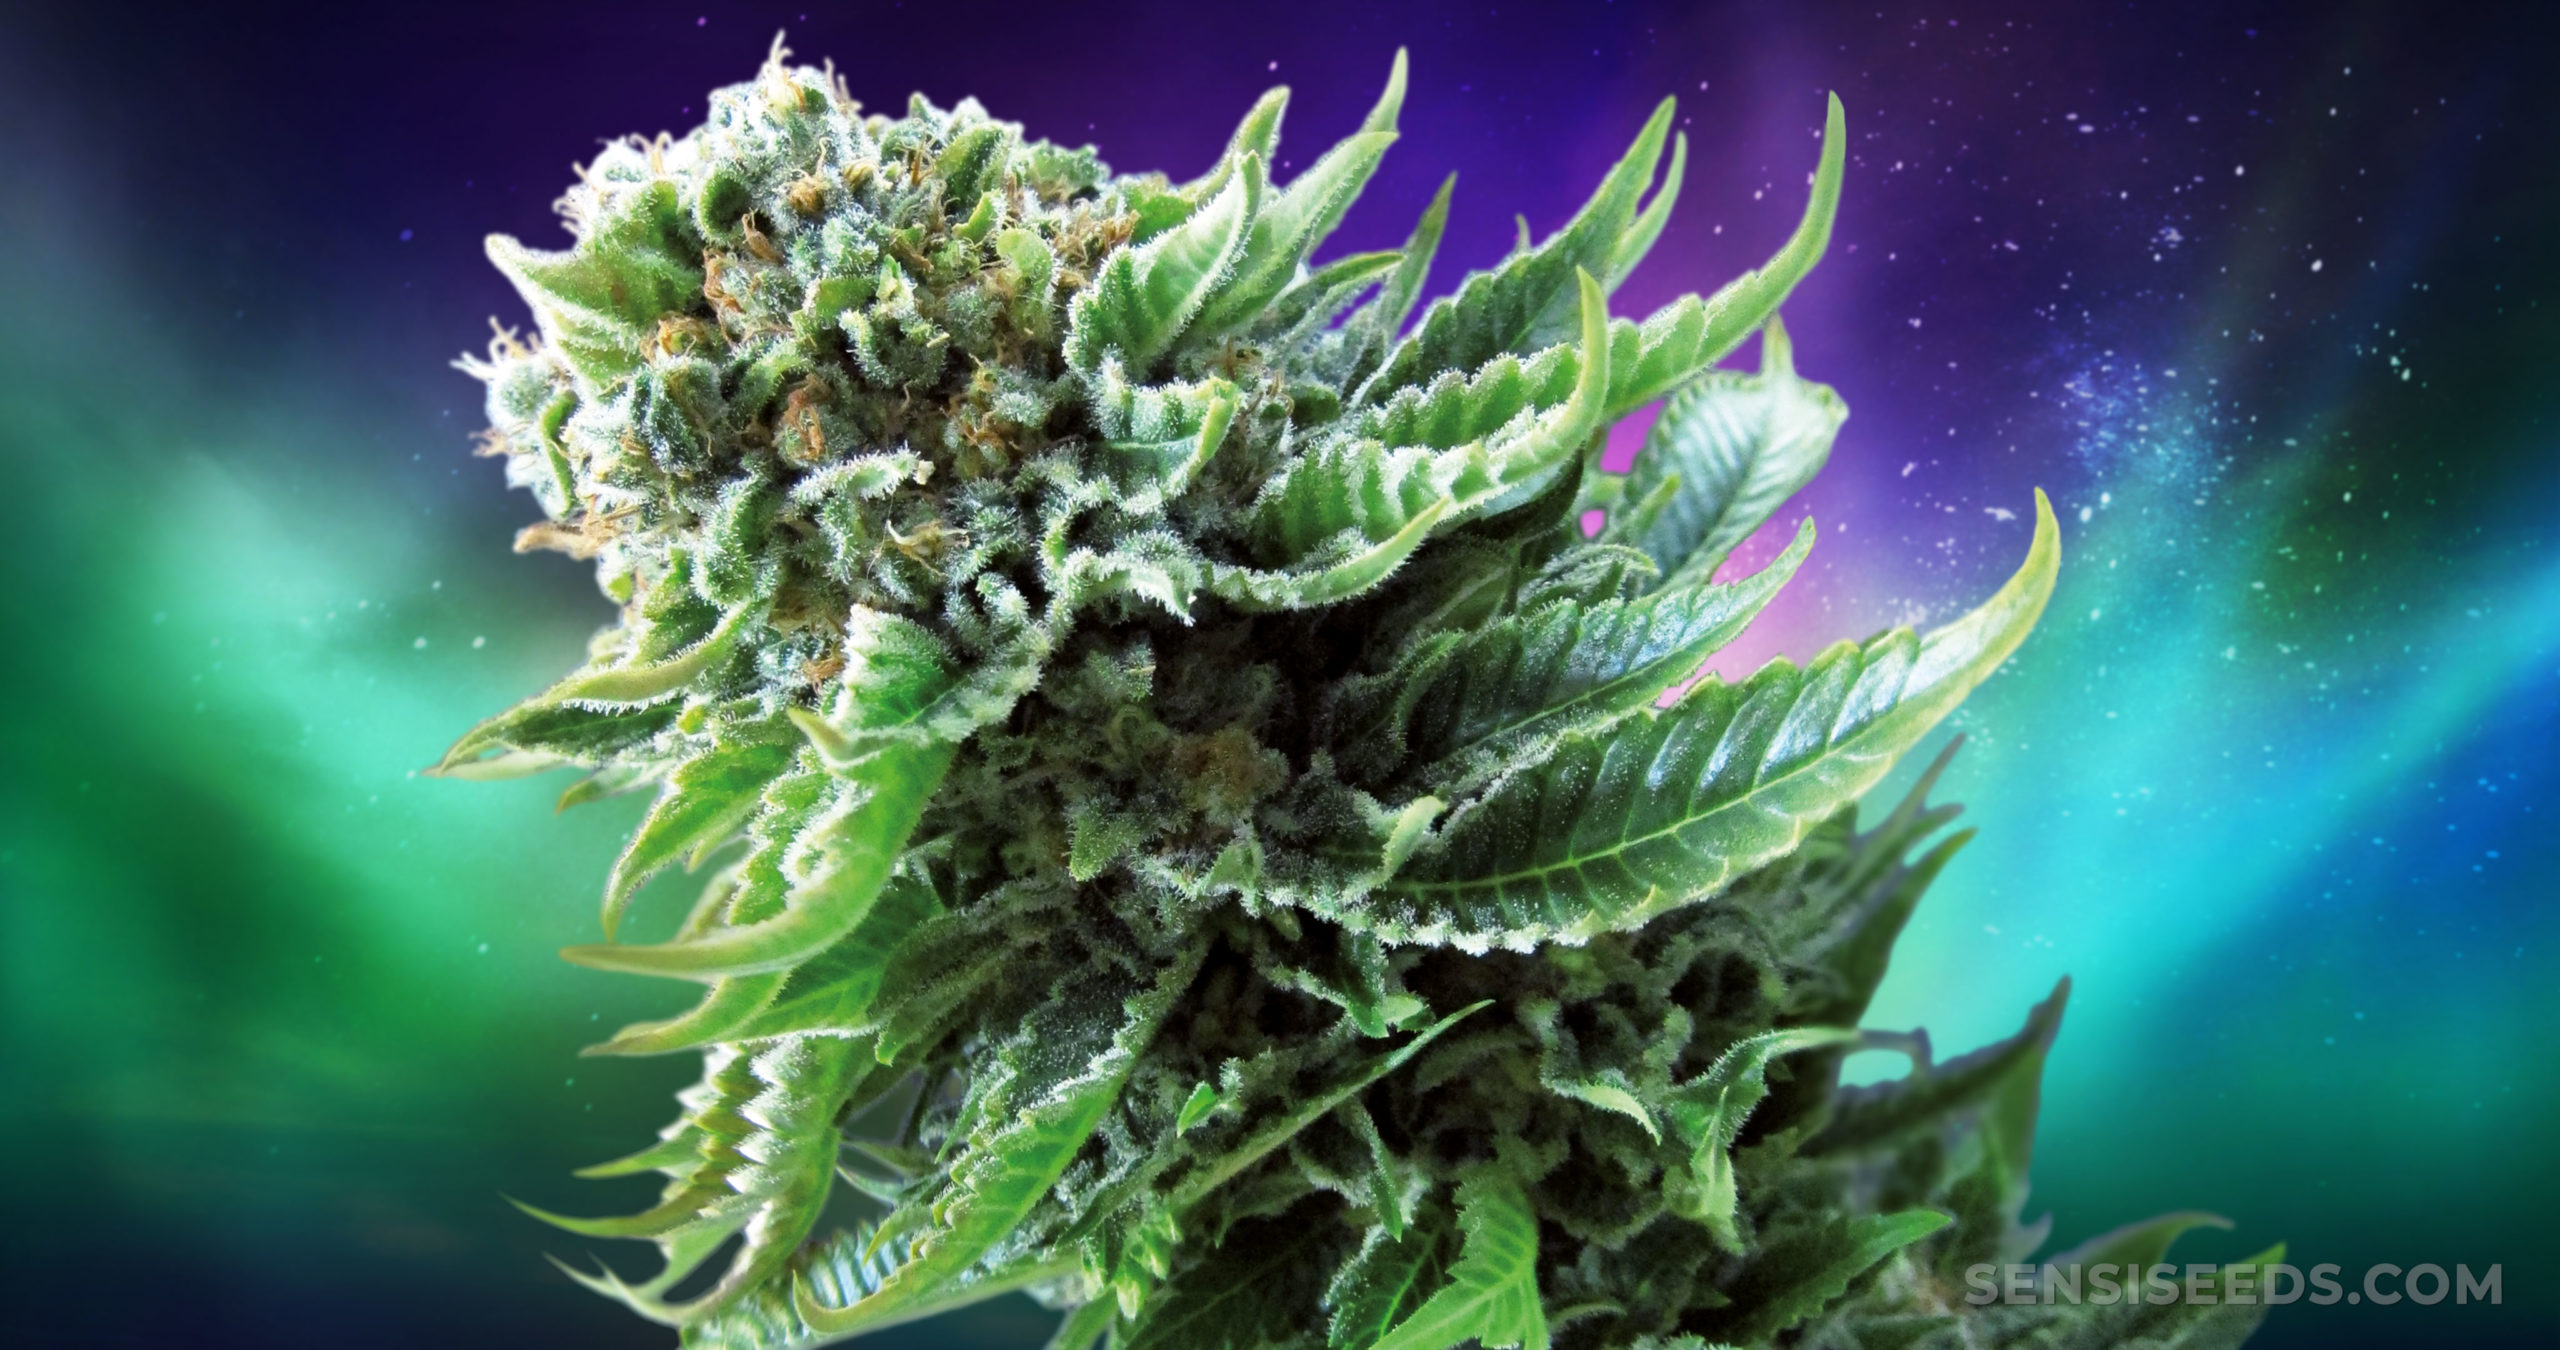 Five Autoflowering Cannabis Strains to Grow in 2021